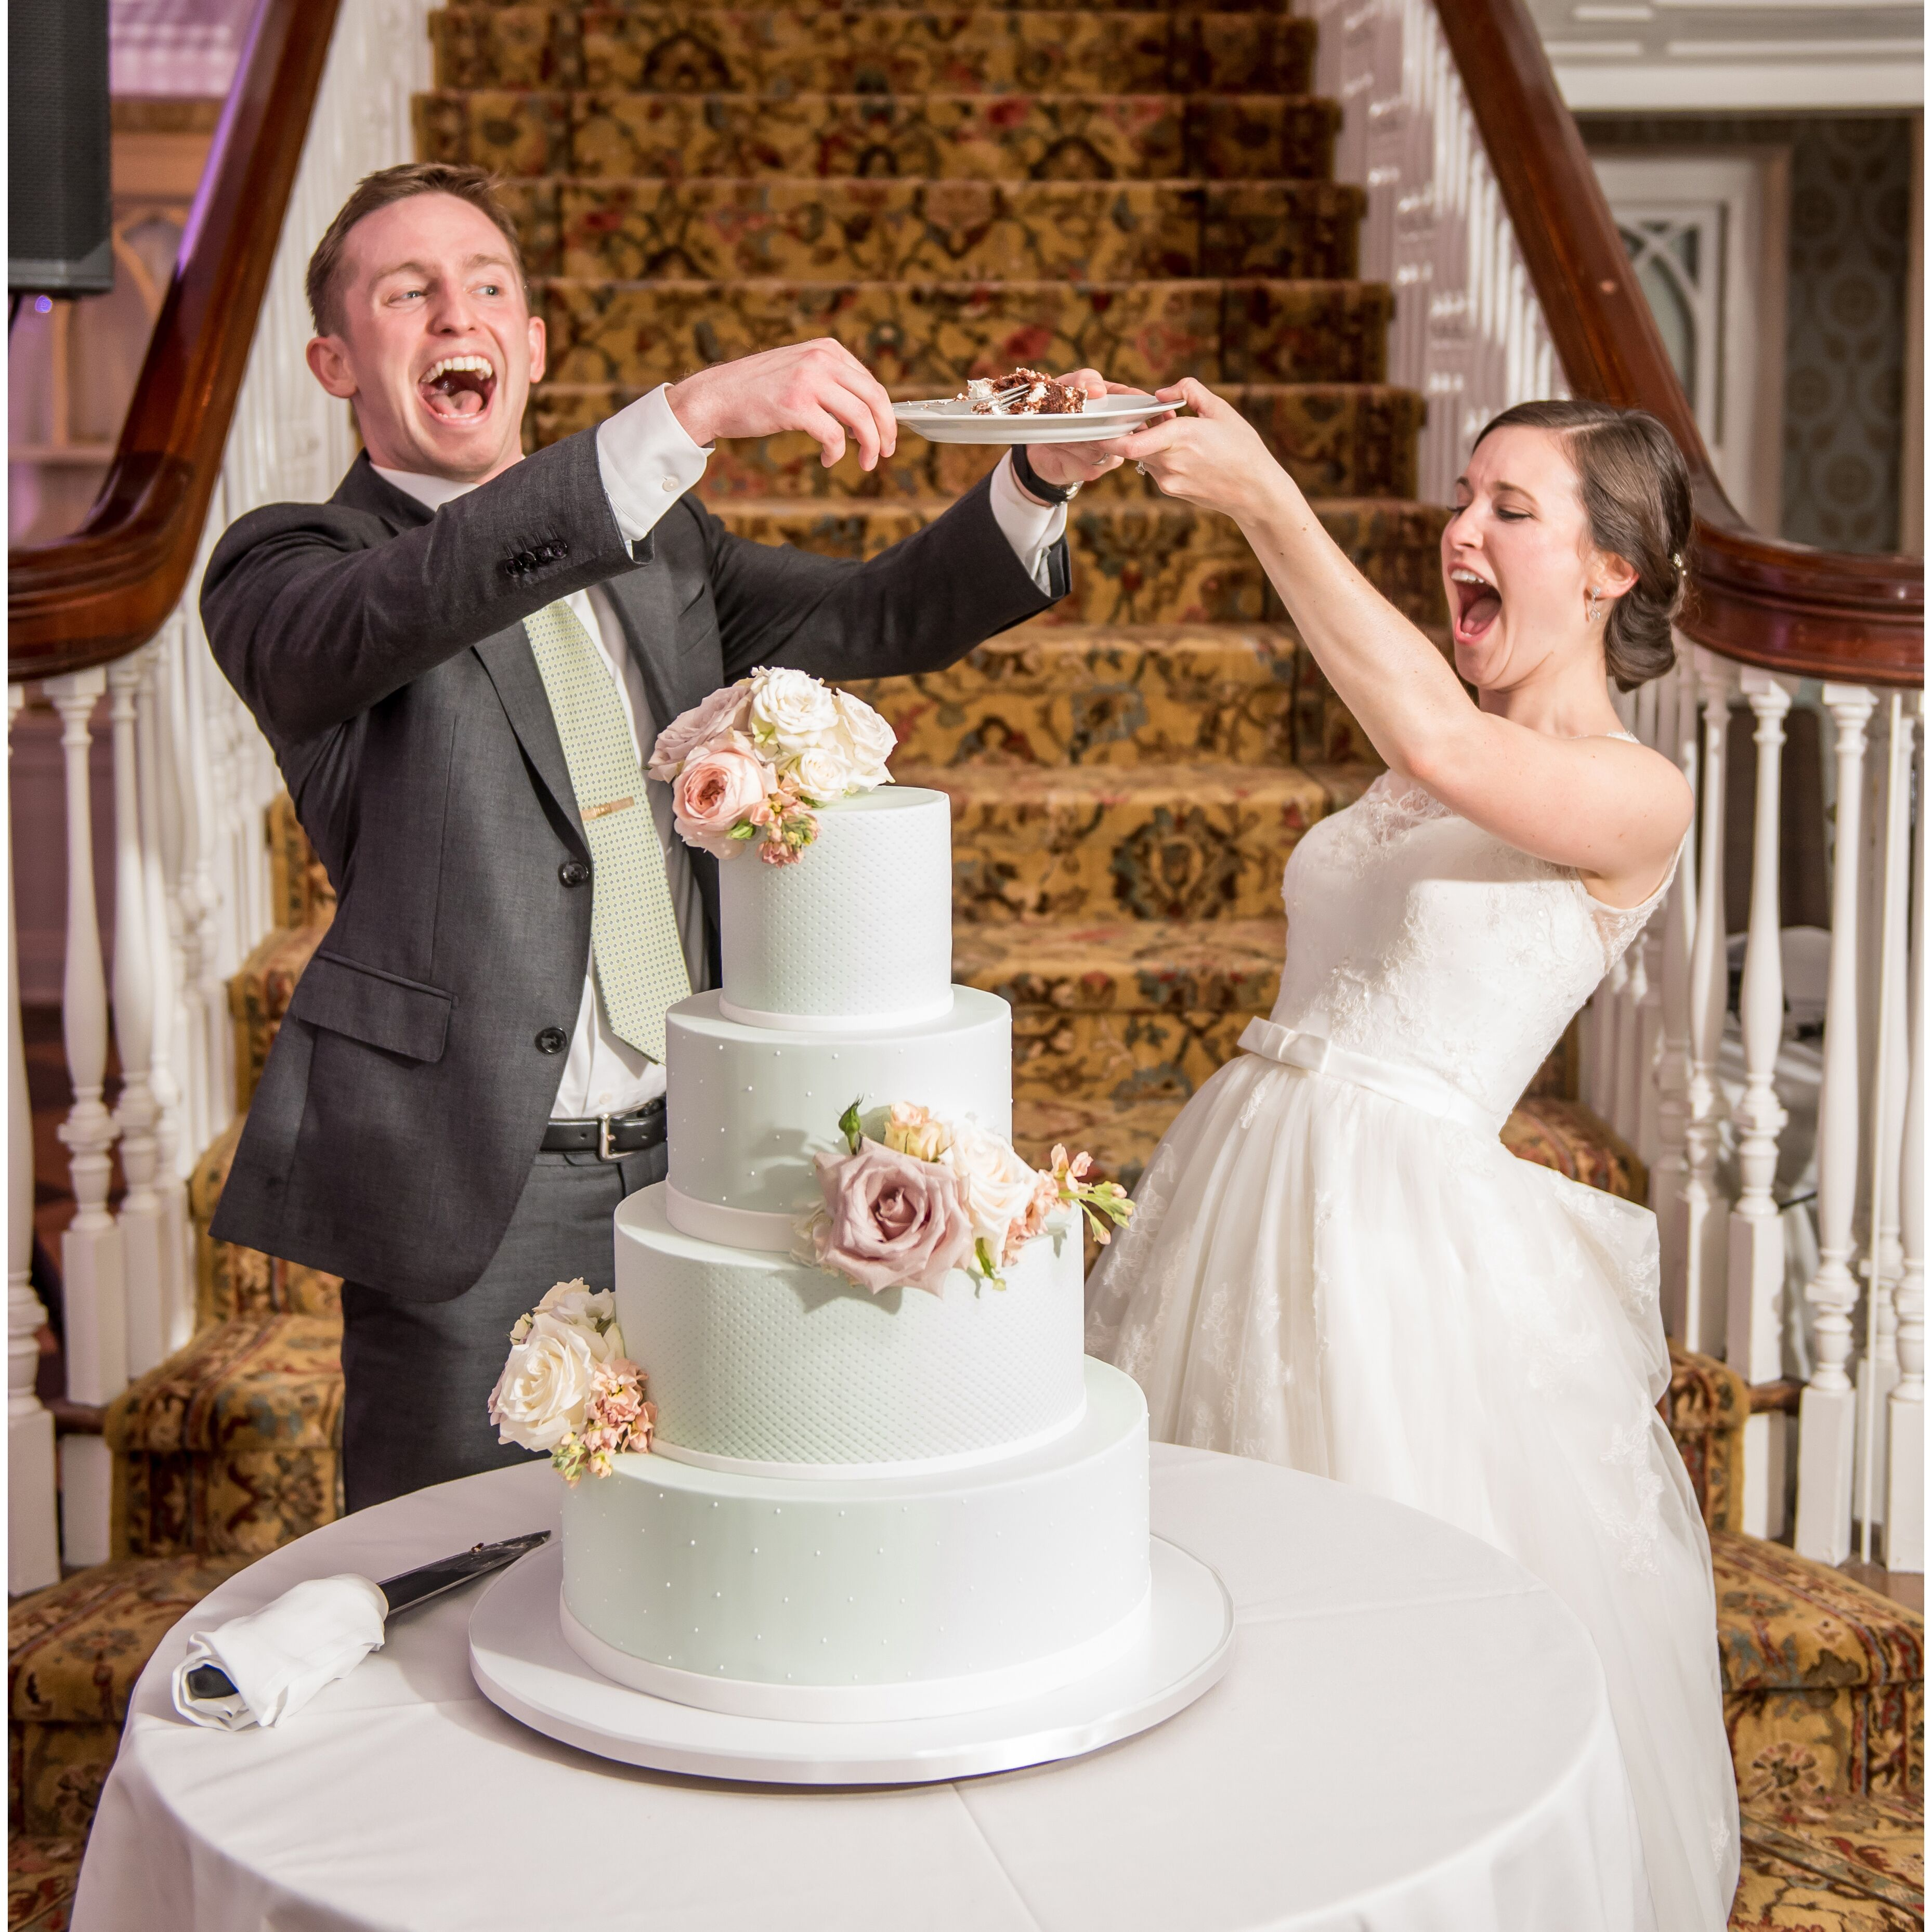 Wedding Venues In Stratford Ct: Wedding Cakes - View 75 Reviews And 23 Pictures